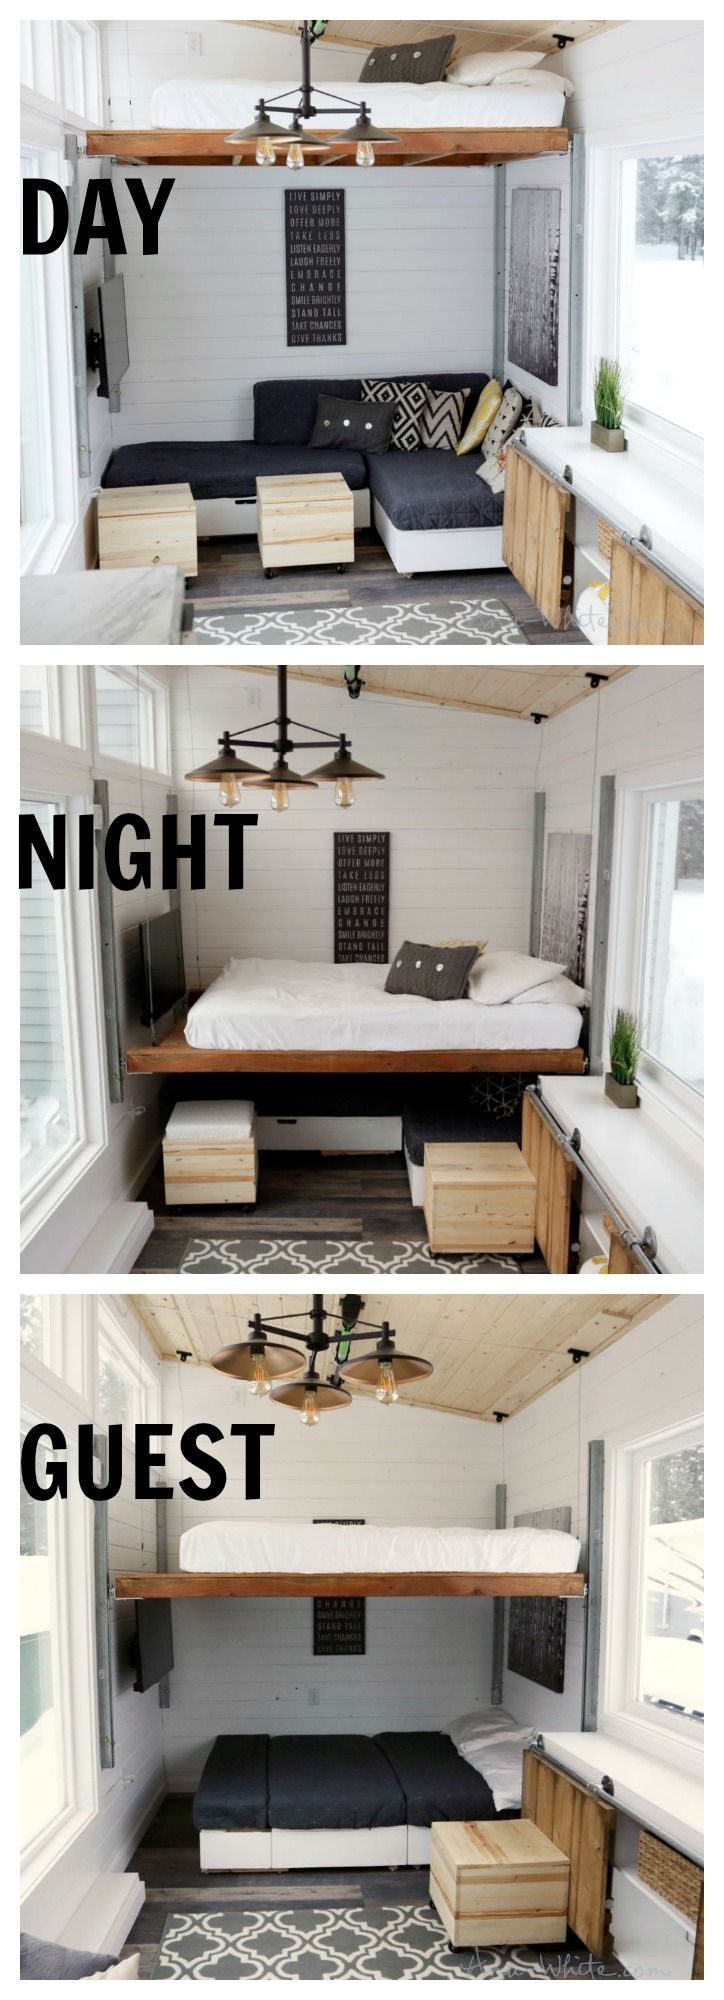 Fabulous 17 Best Ideas About Tiny Houses On Pinterest Tiny Homes Mini Largest Home Design Picture Inspirations Pitcheantrous